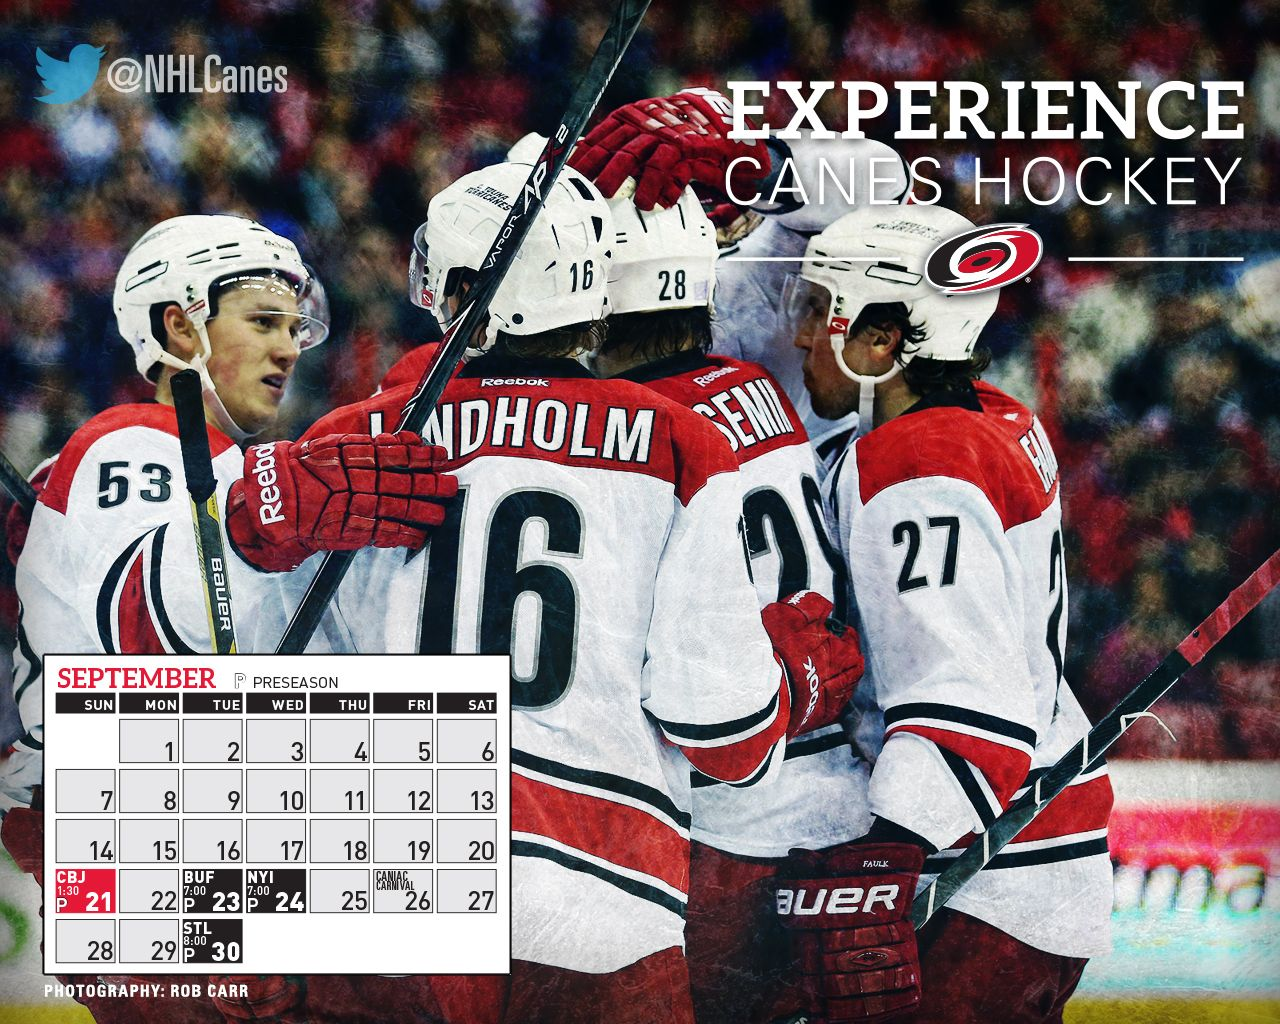 New #Canes September wallpaper. Less than 3 weeks until our first preseason game!